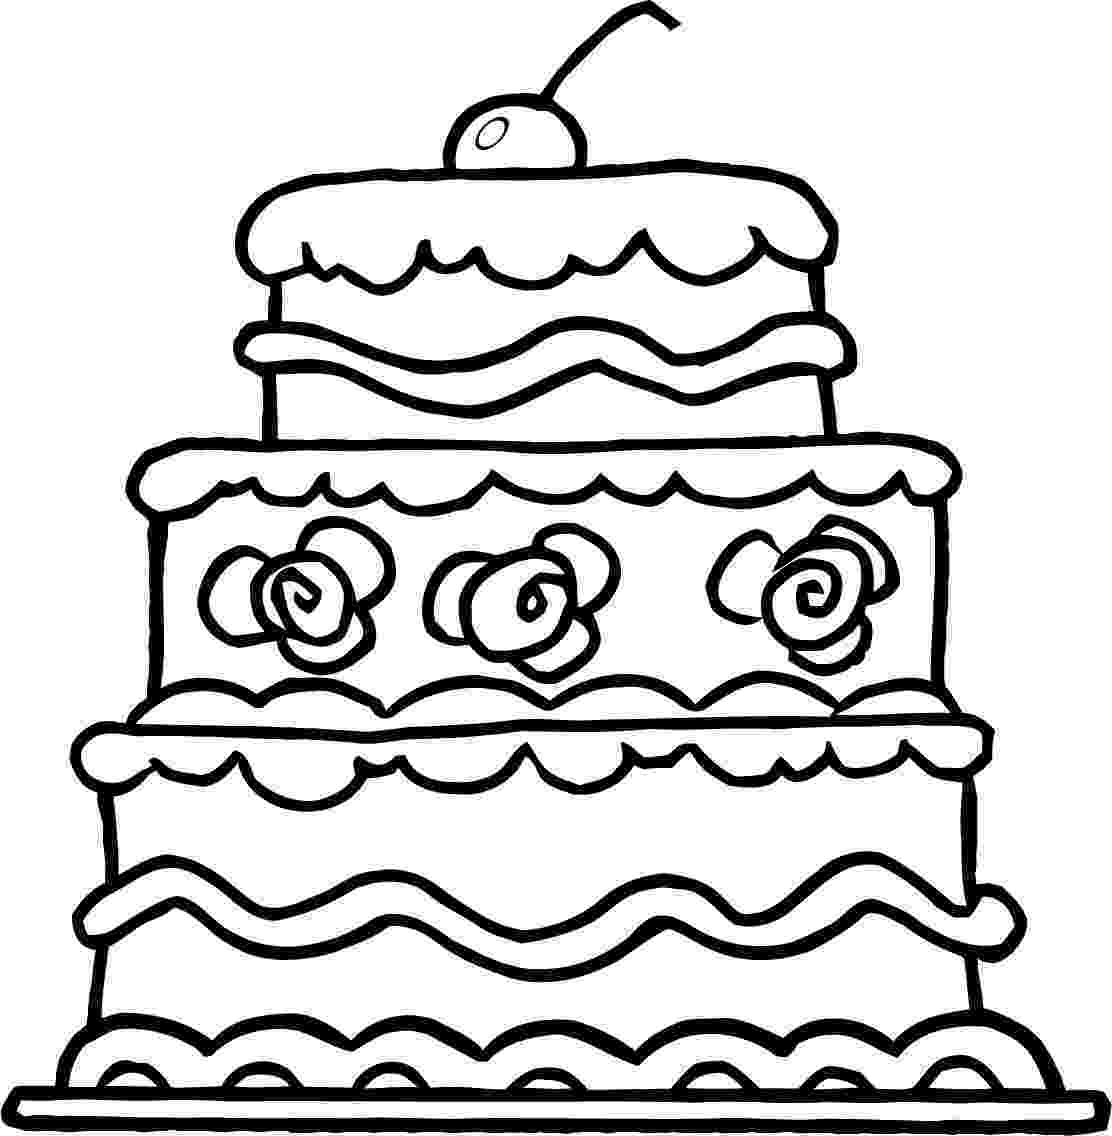 cake coloring pages to print free printable birthday cake coloring pages for kids to pages cake coloring print